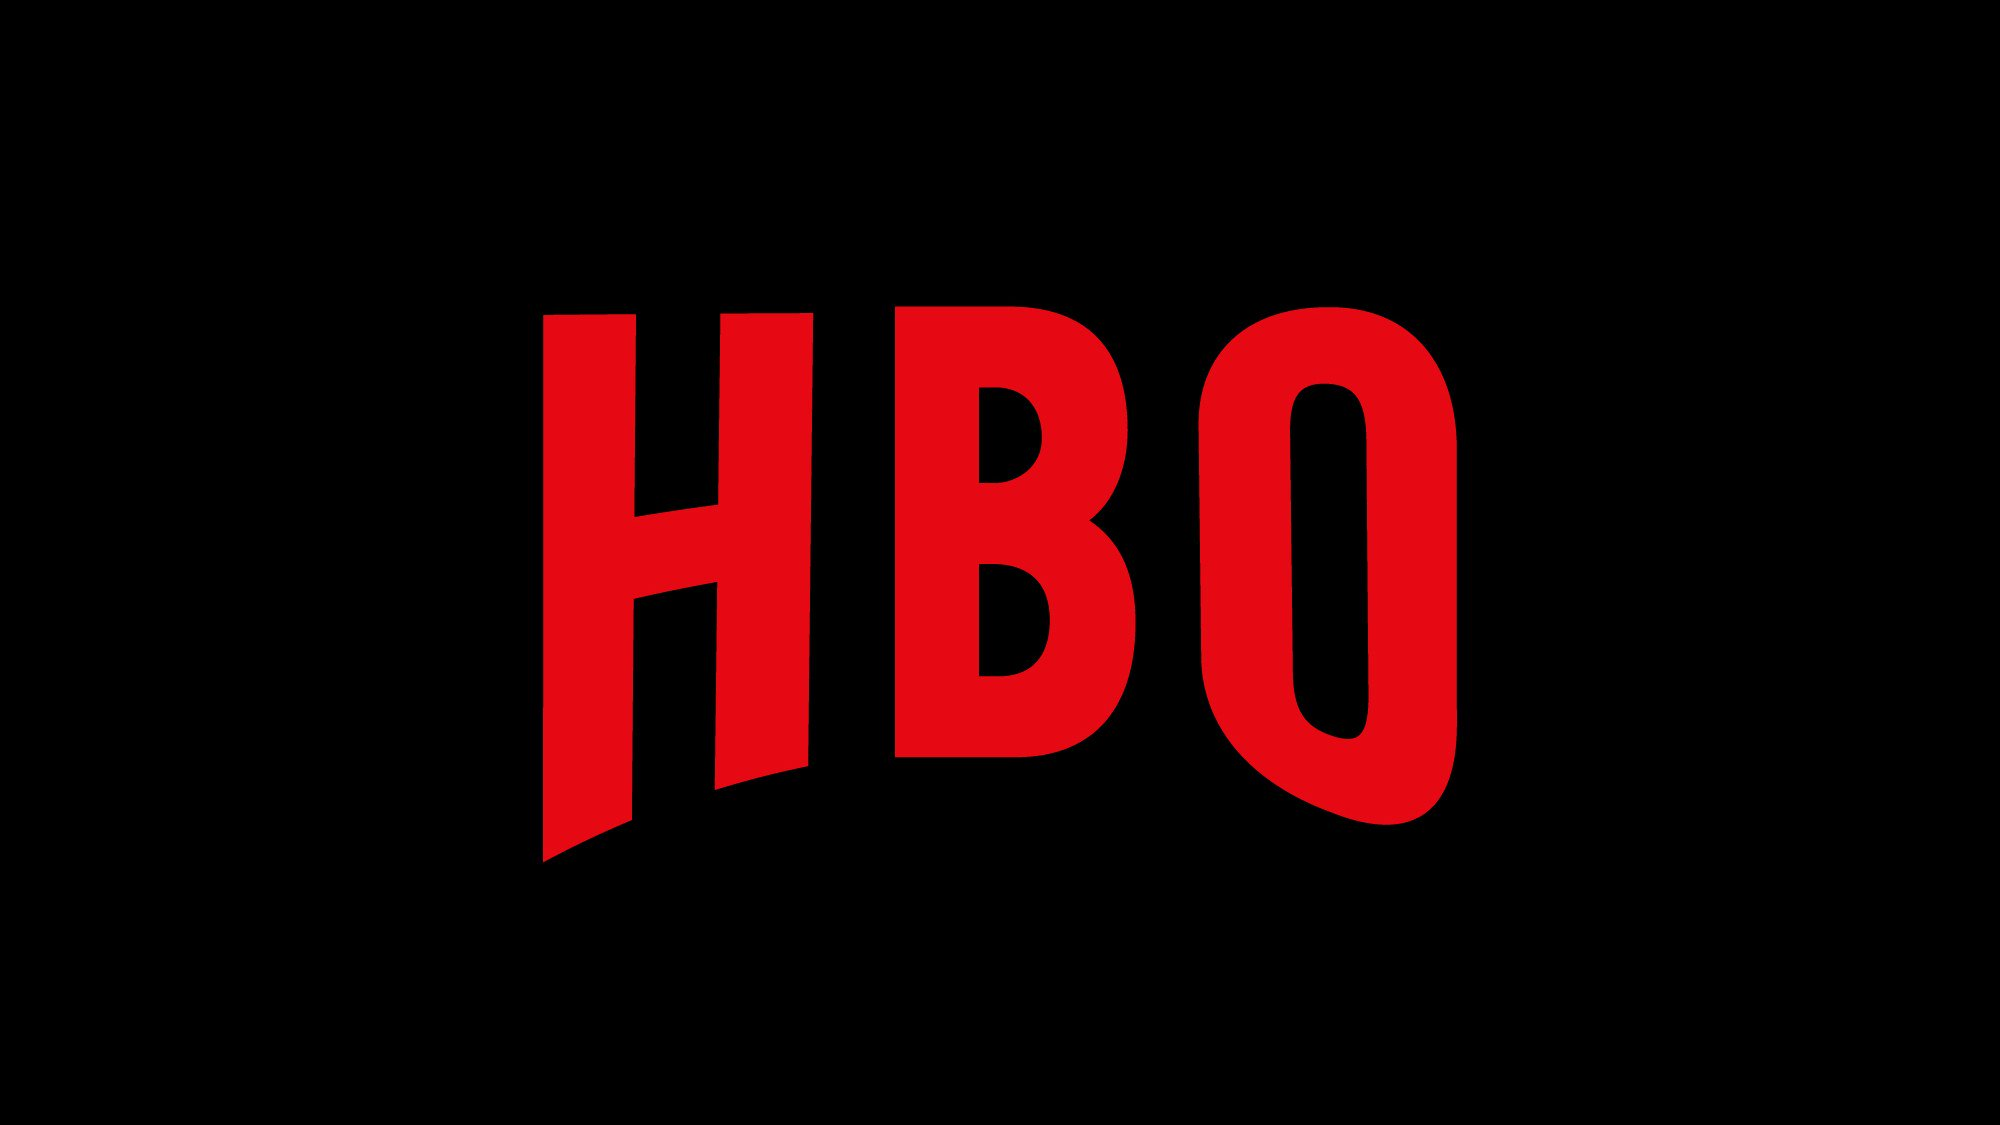 HBO wants to be less like HBO and more like Netflix https://t.co/T7L77yPjsI https://t.co/w2MhUdZa4L